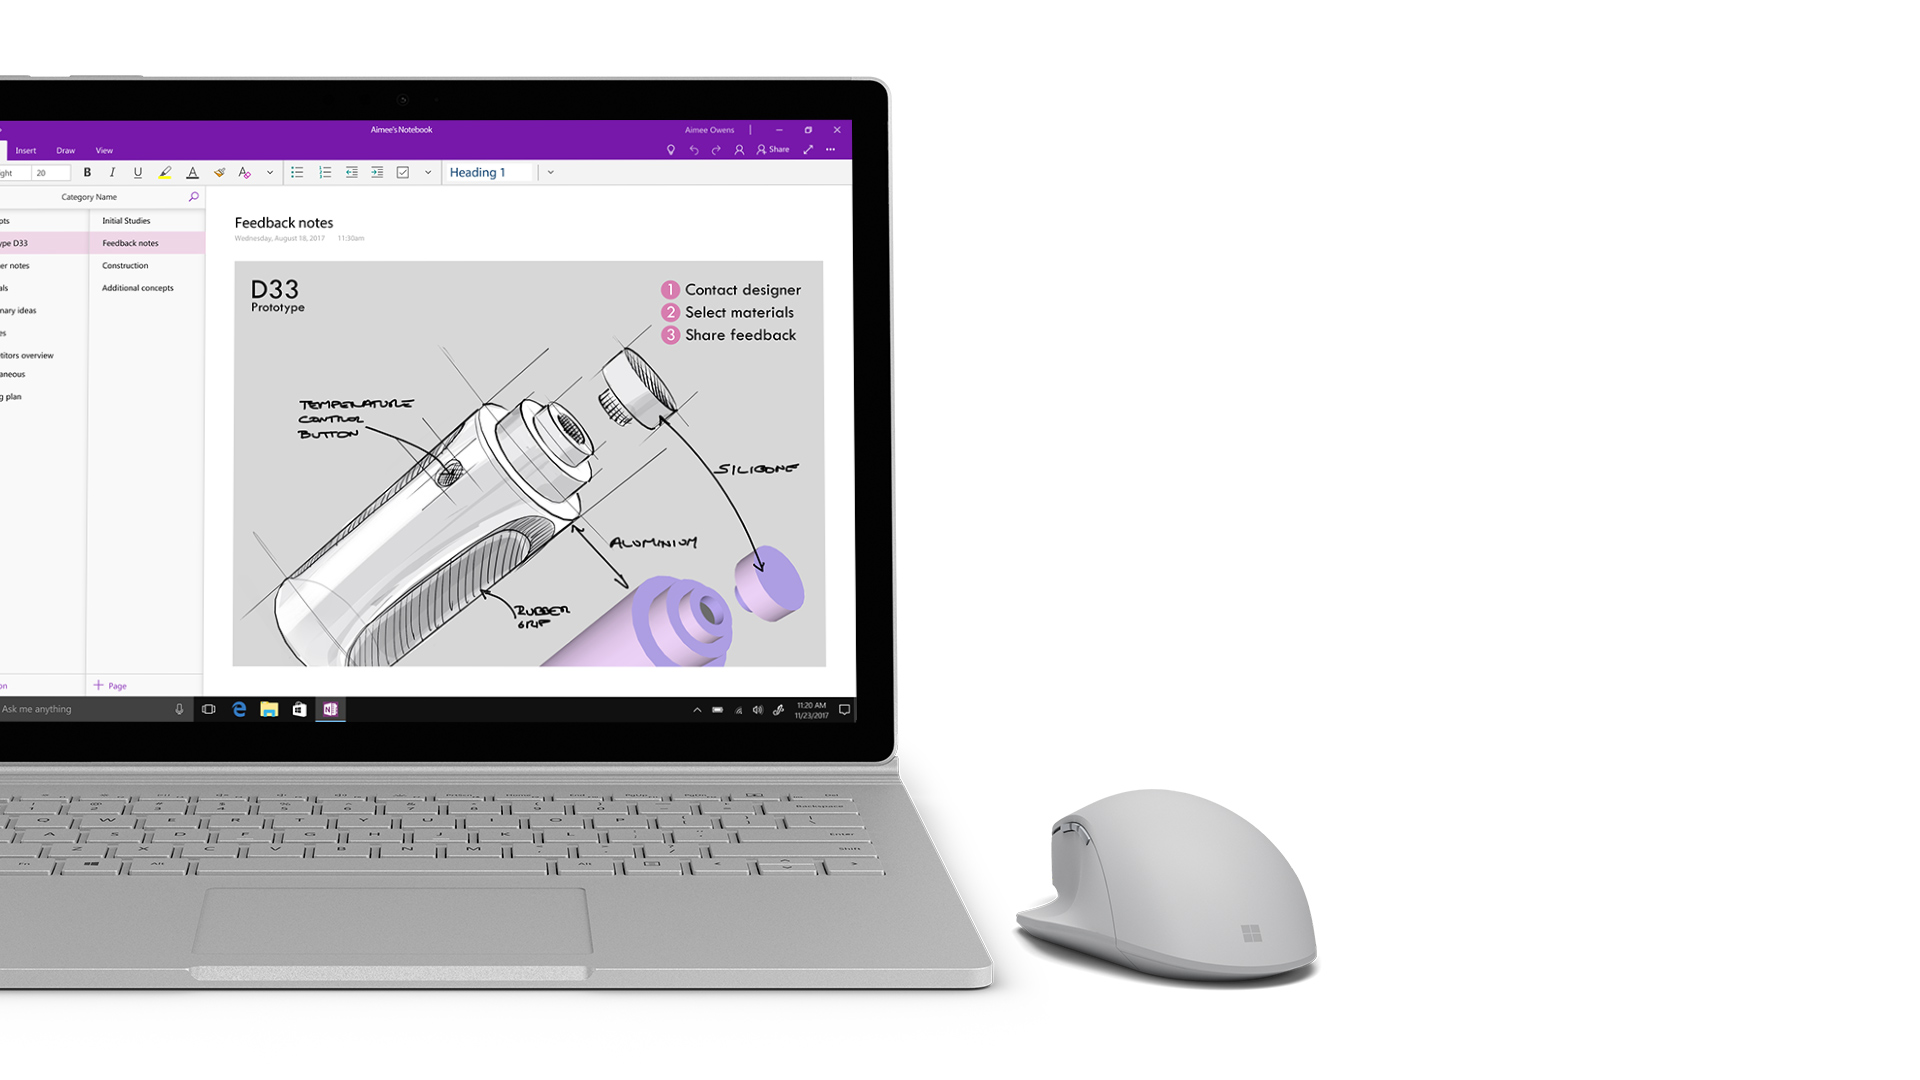 Surface mit OneNote-Screenshot.